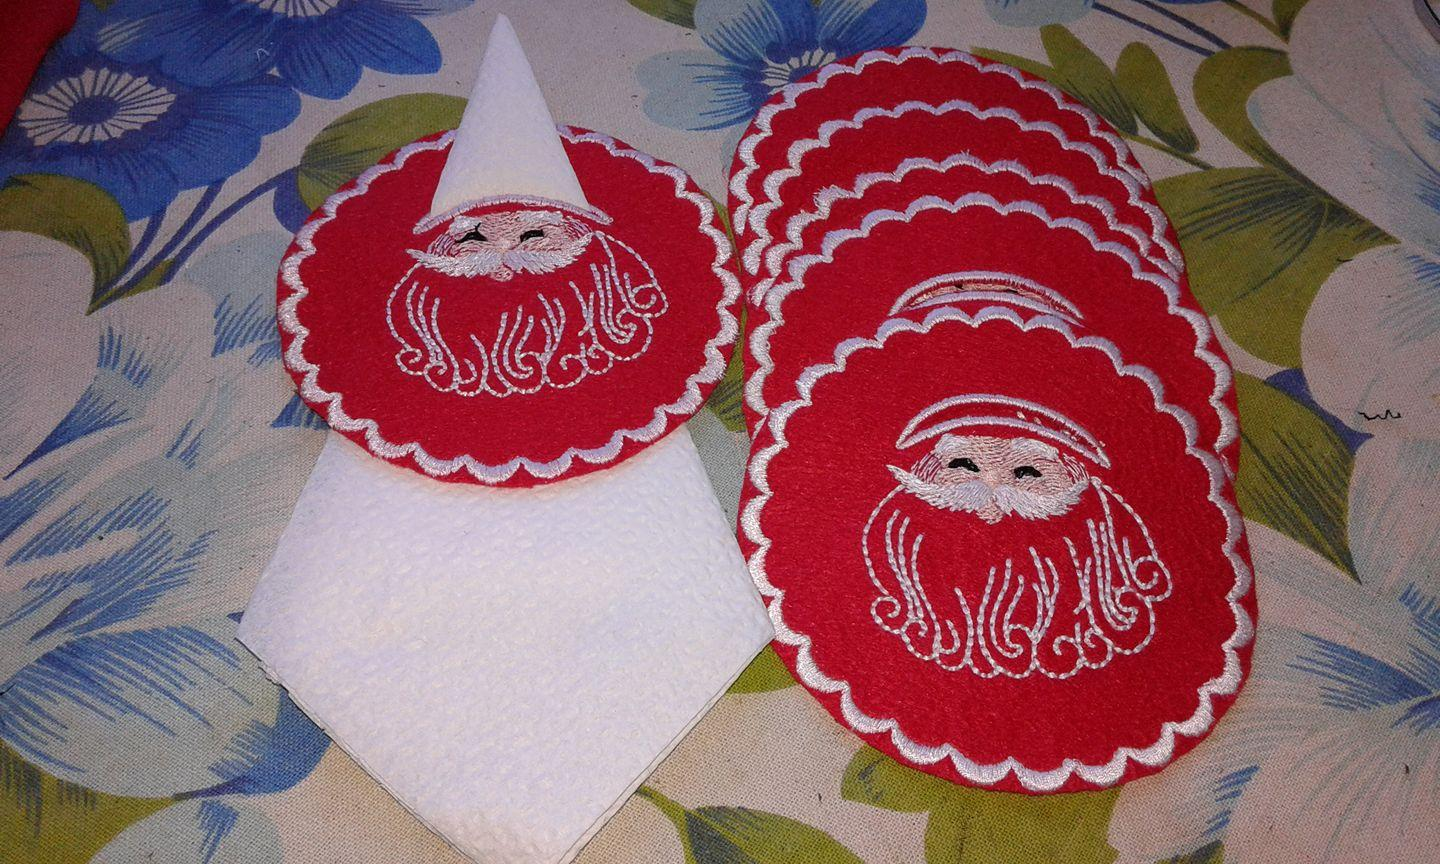 Serviette with Santa free embroidery